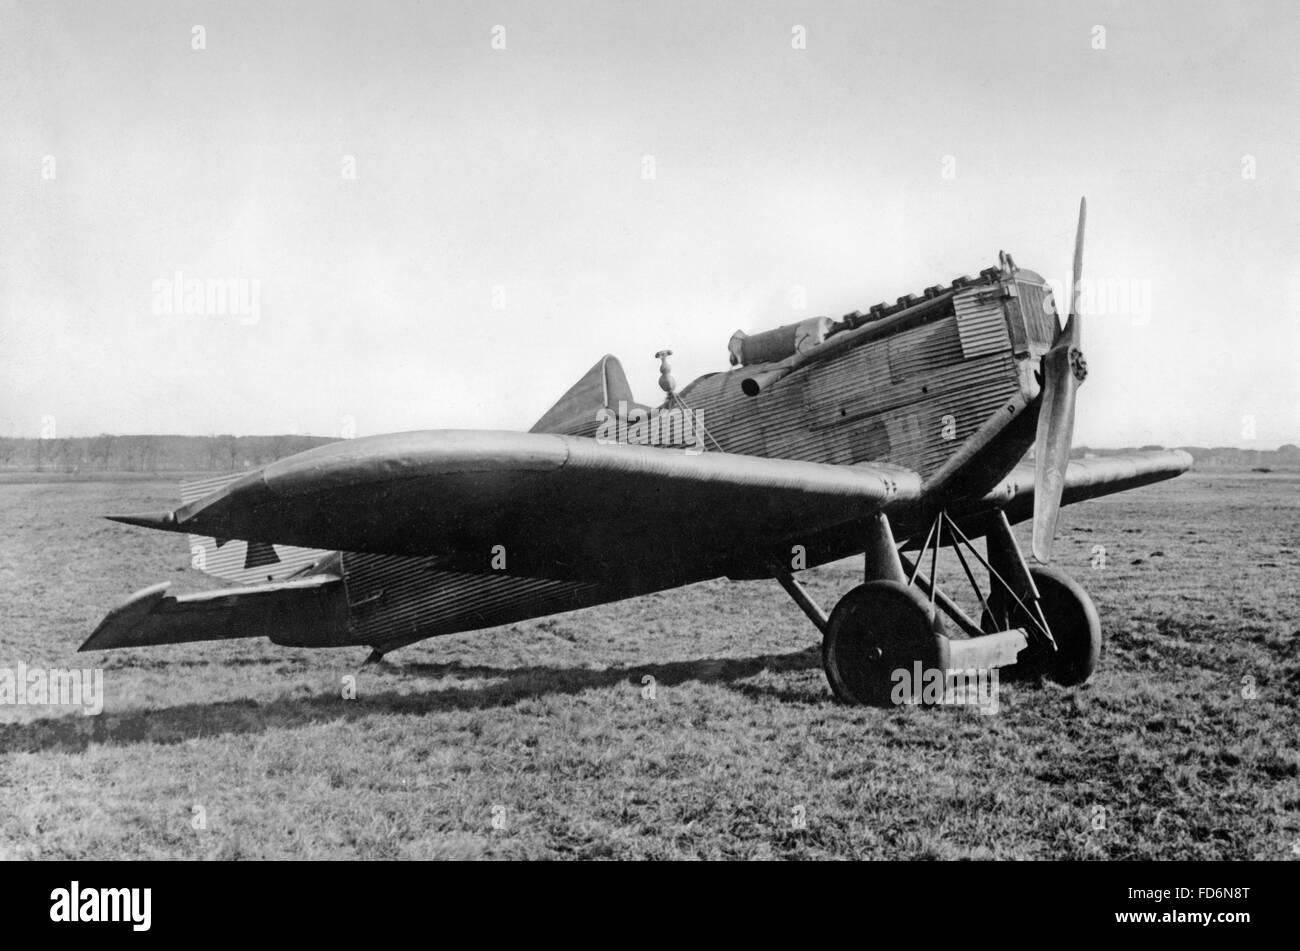 A Junkers D.I parked on an airfield, 1918 - Stock Image